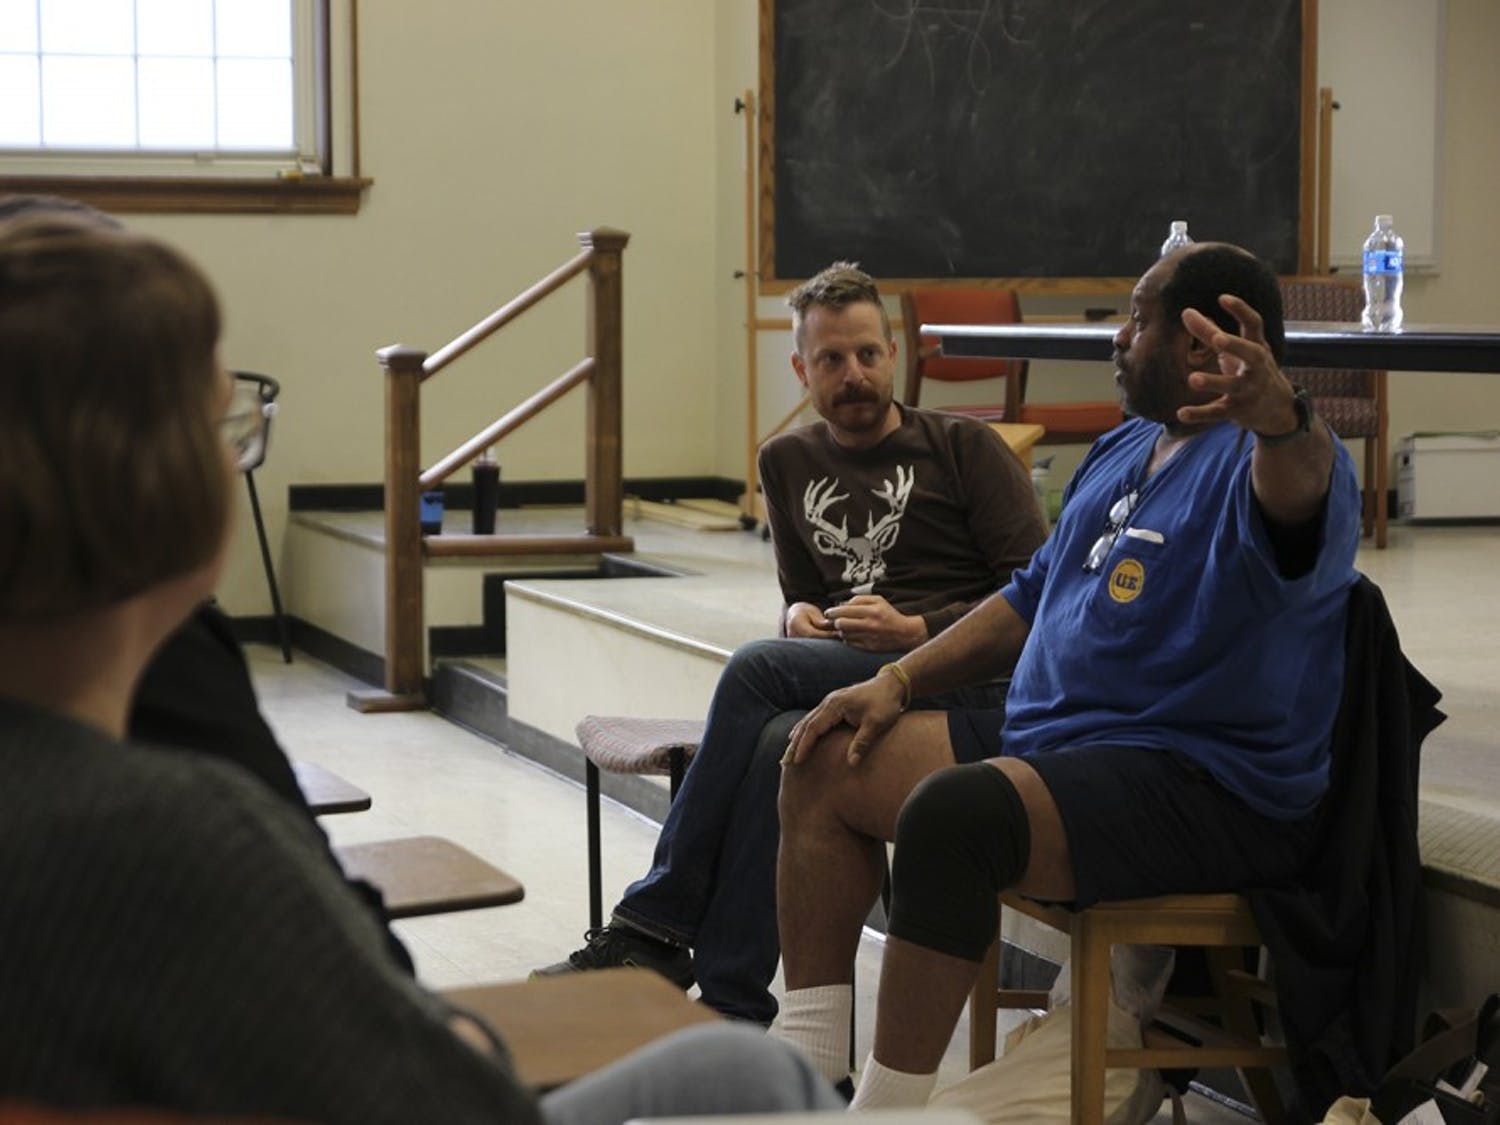 Mike Dimpfl (left) and Angaza Laughinghouse speak on a panel about workers rights at UNC.